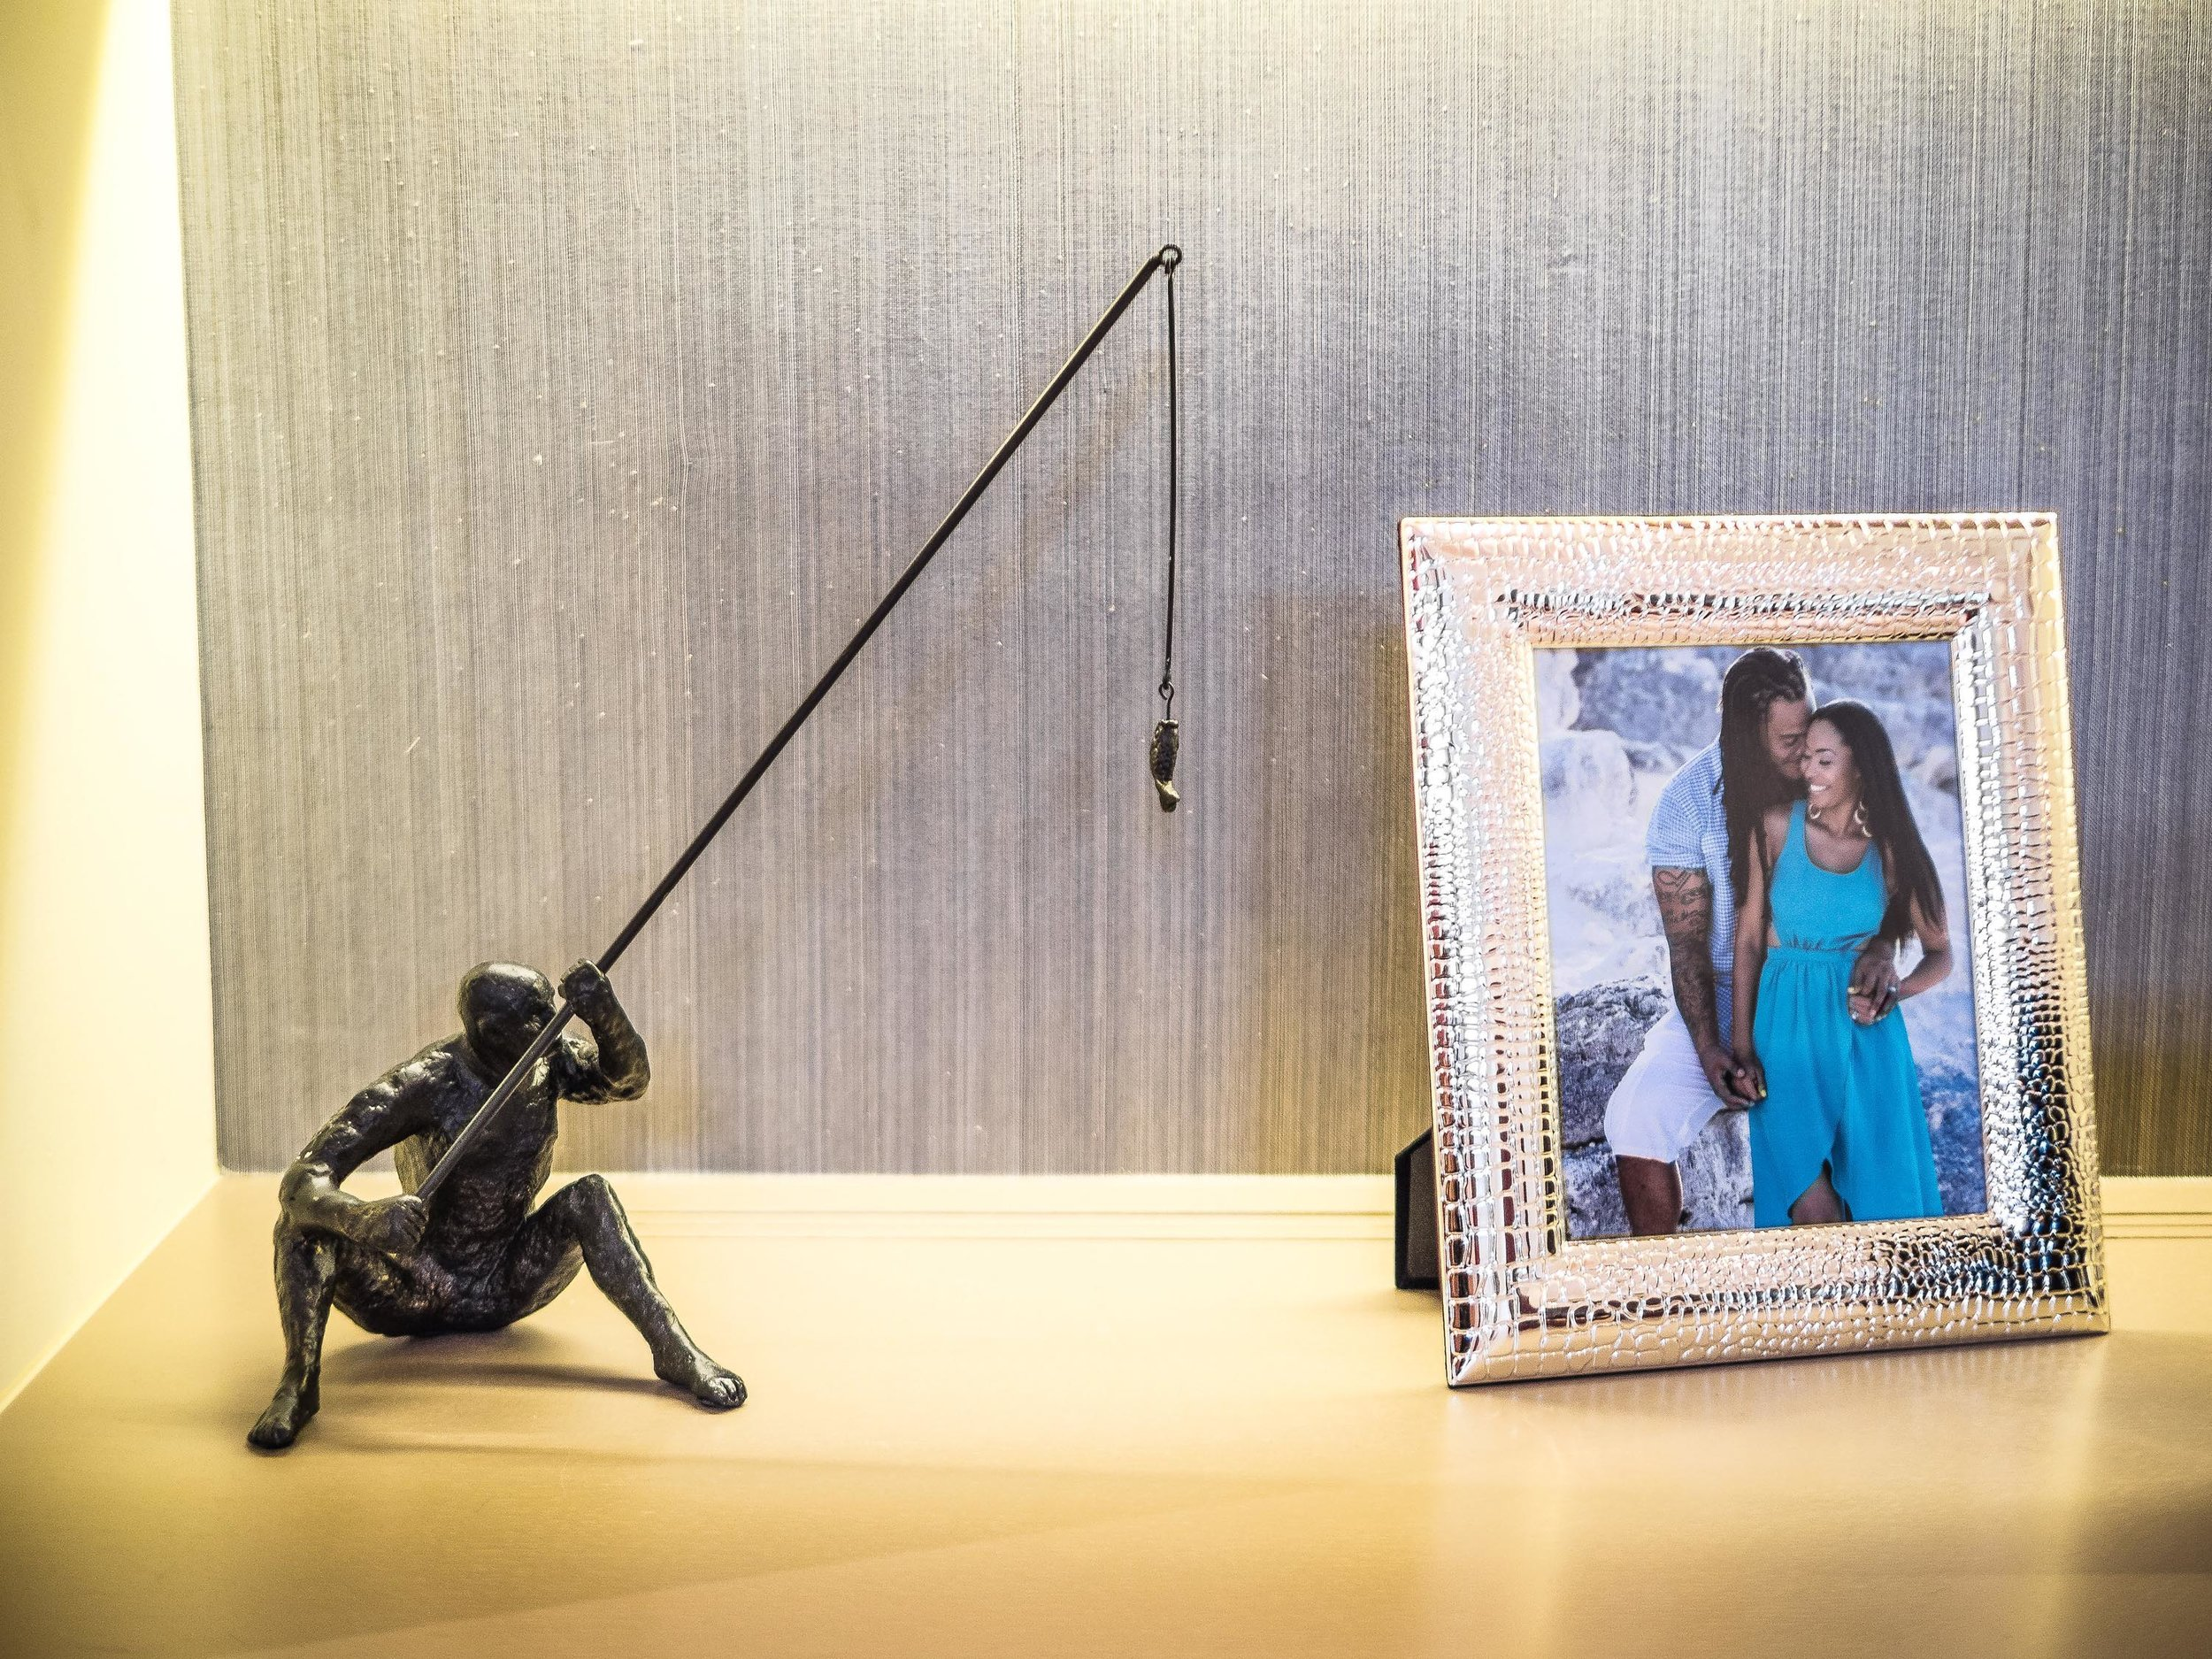 A shelf with couple picture frame and a figurine